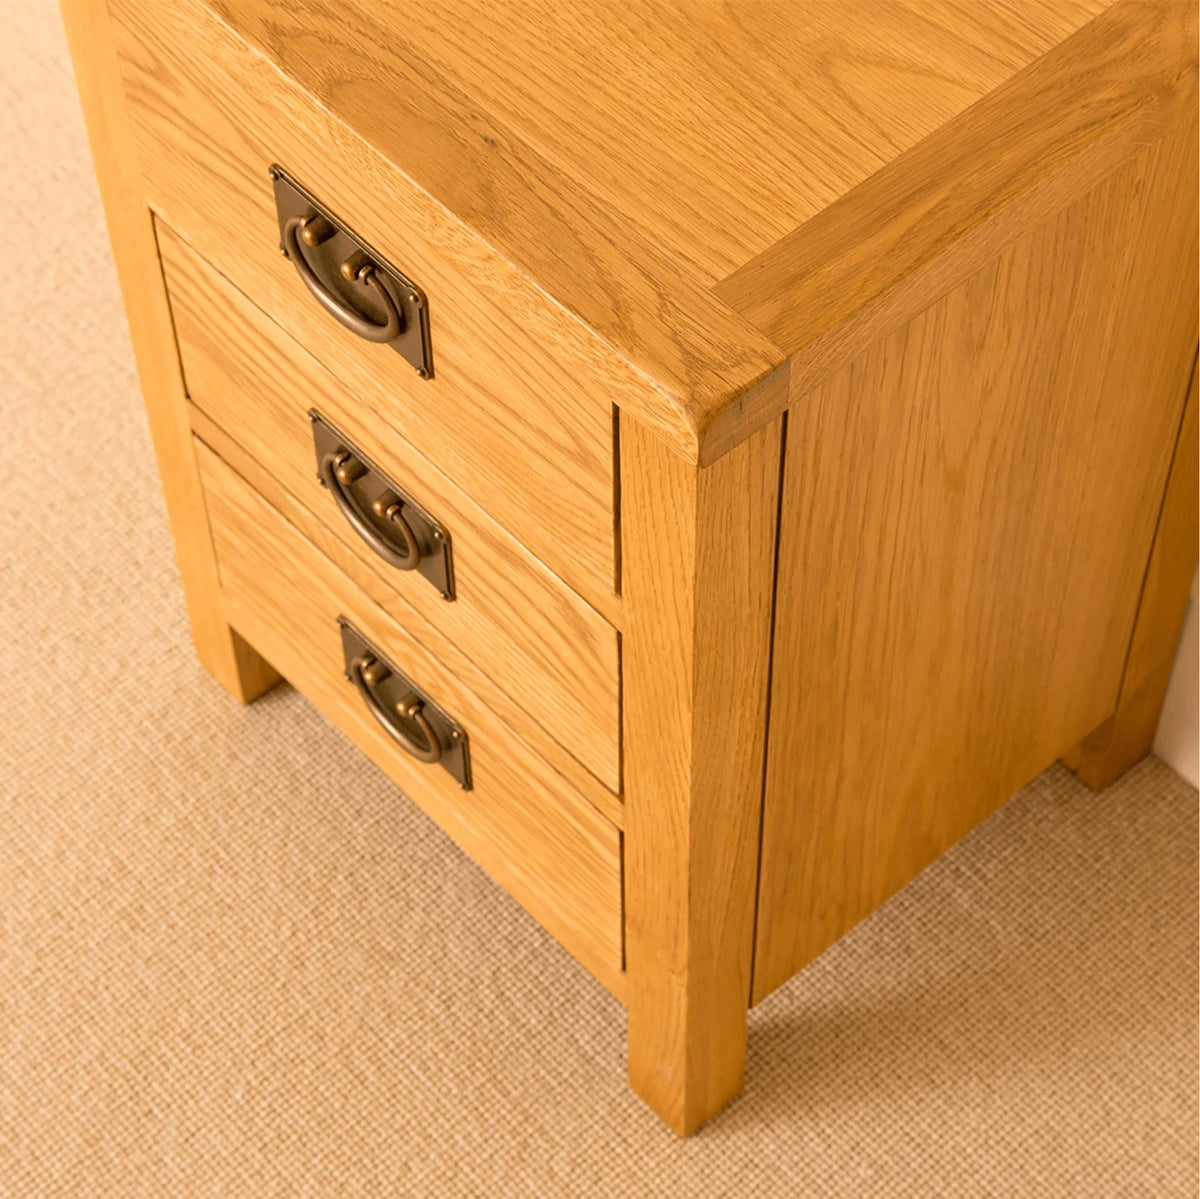 Lanner Oak Bedside Table drawers closed top view